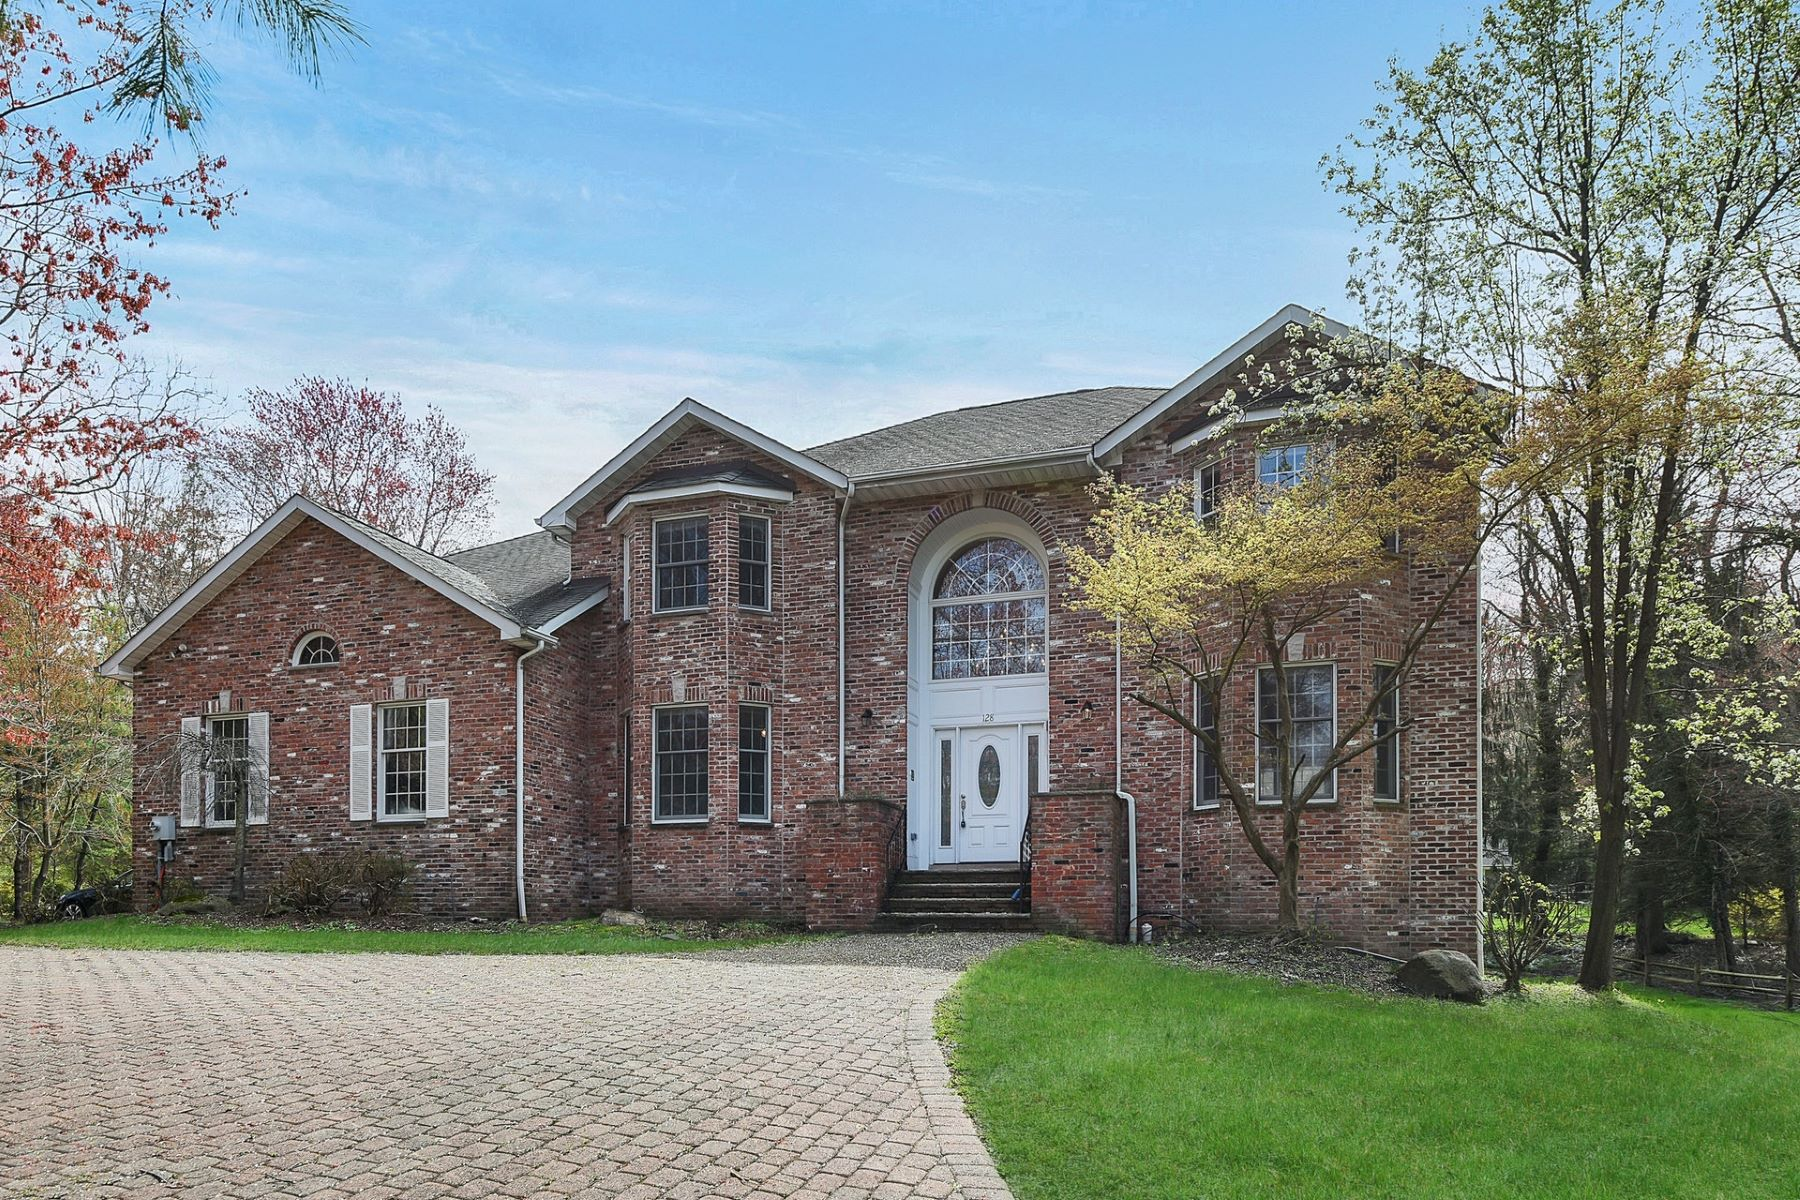 Single Family Homes for Sale at Impressive Center Hall Colonial 128 Anderson Ave, Demarest, New Jersey 07627 United States